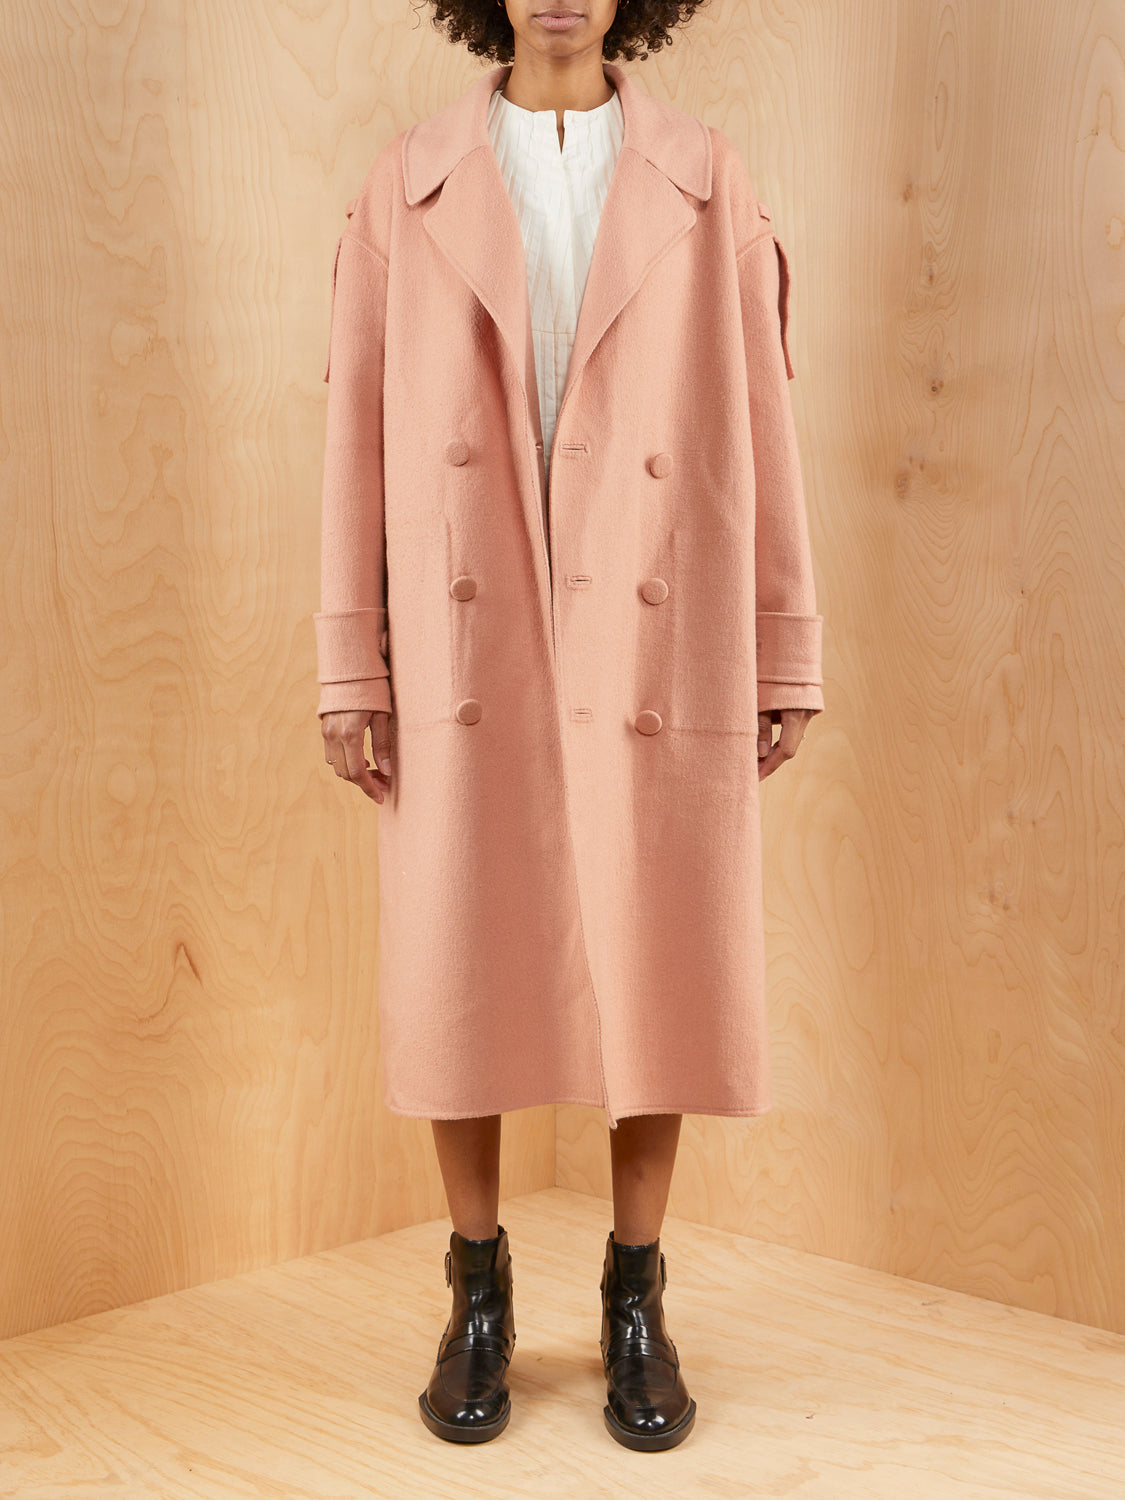 Tibi Mauve Double Breasted Wool Coat